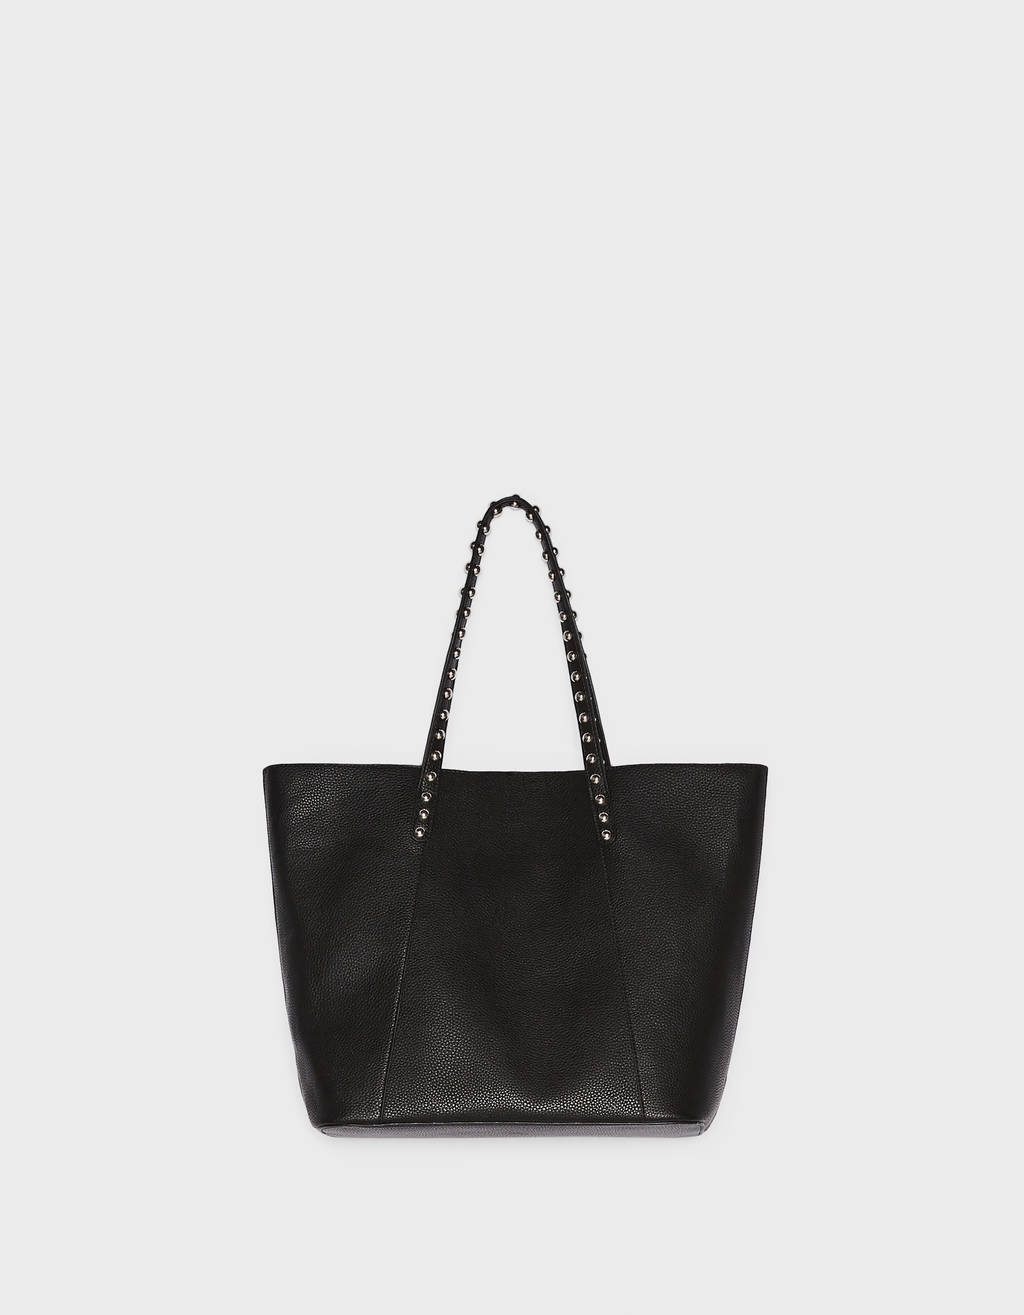 af2b8d143 Bags - COLLECTION - WOMEN - Bershka Philippines